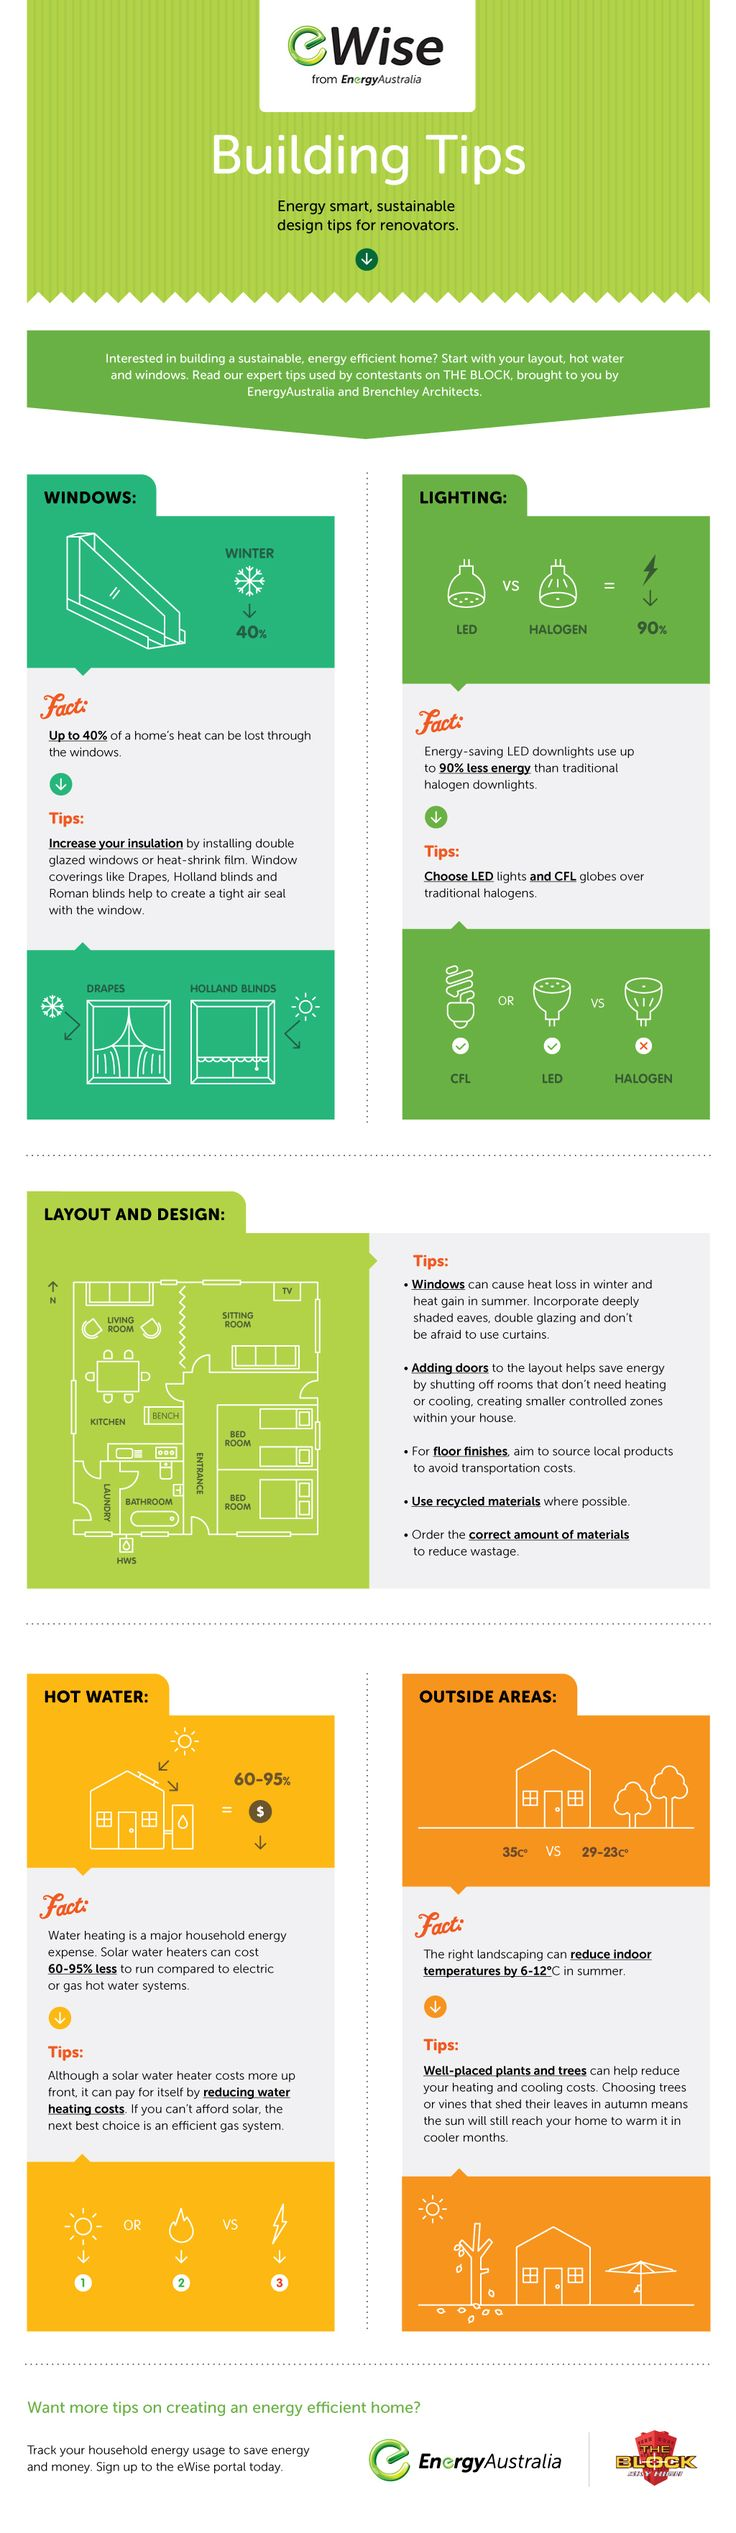 designing an energy efficient home. here\u0027s some tips on how to build an sustainable, energy efficient house courtesy of ewise designing home